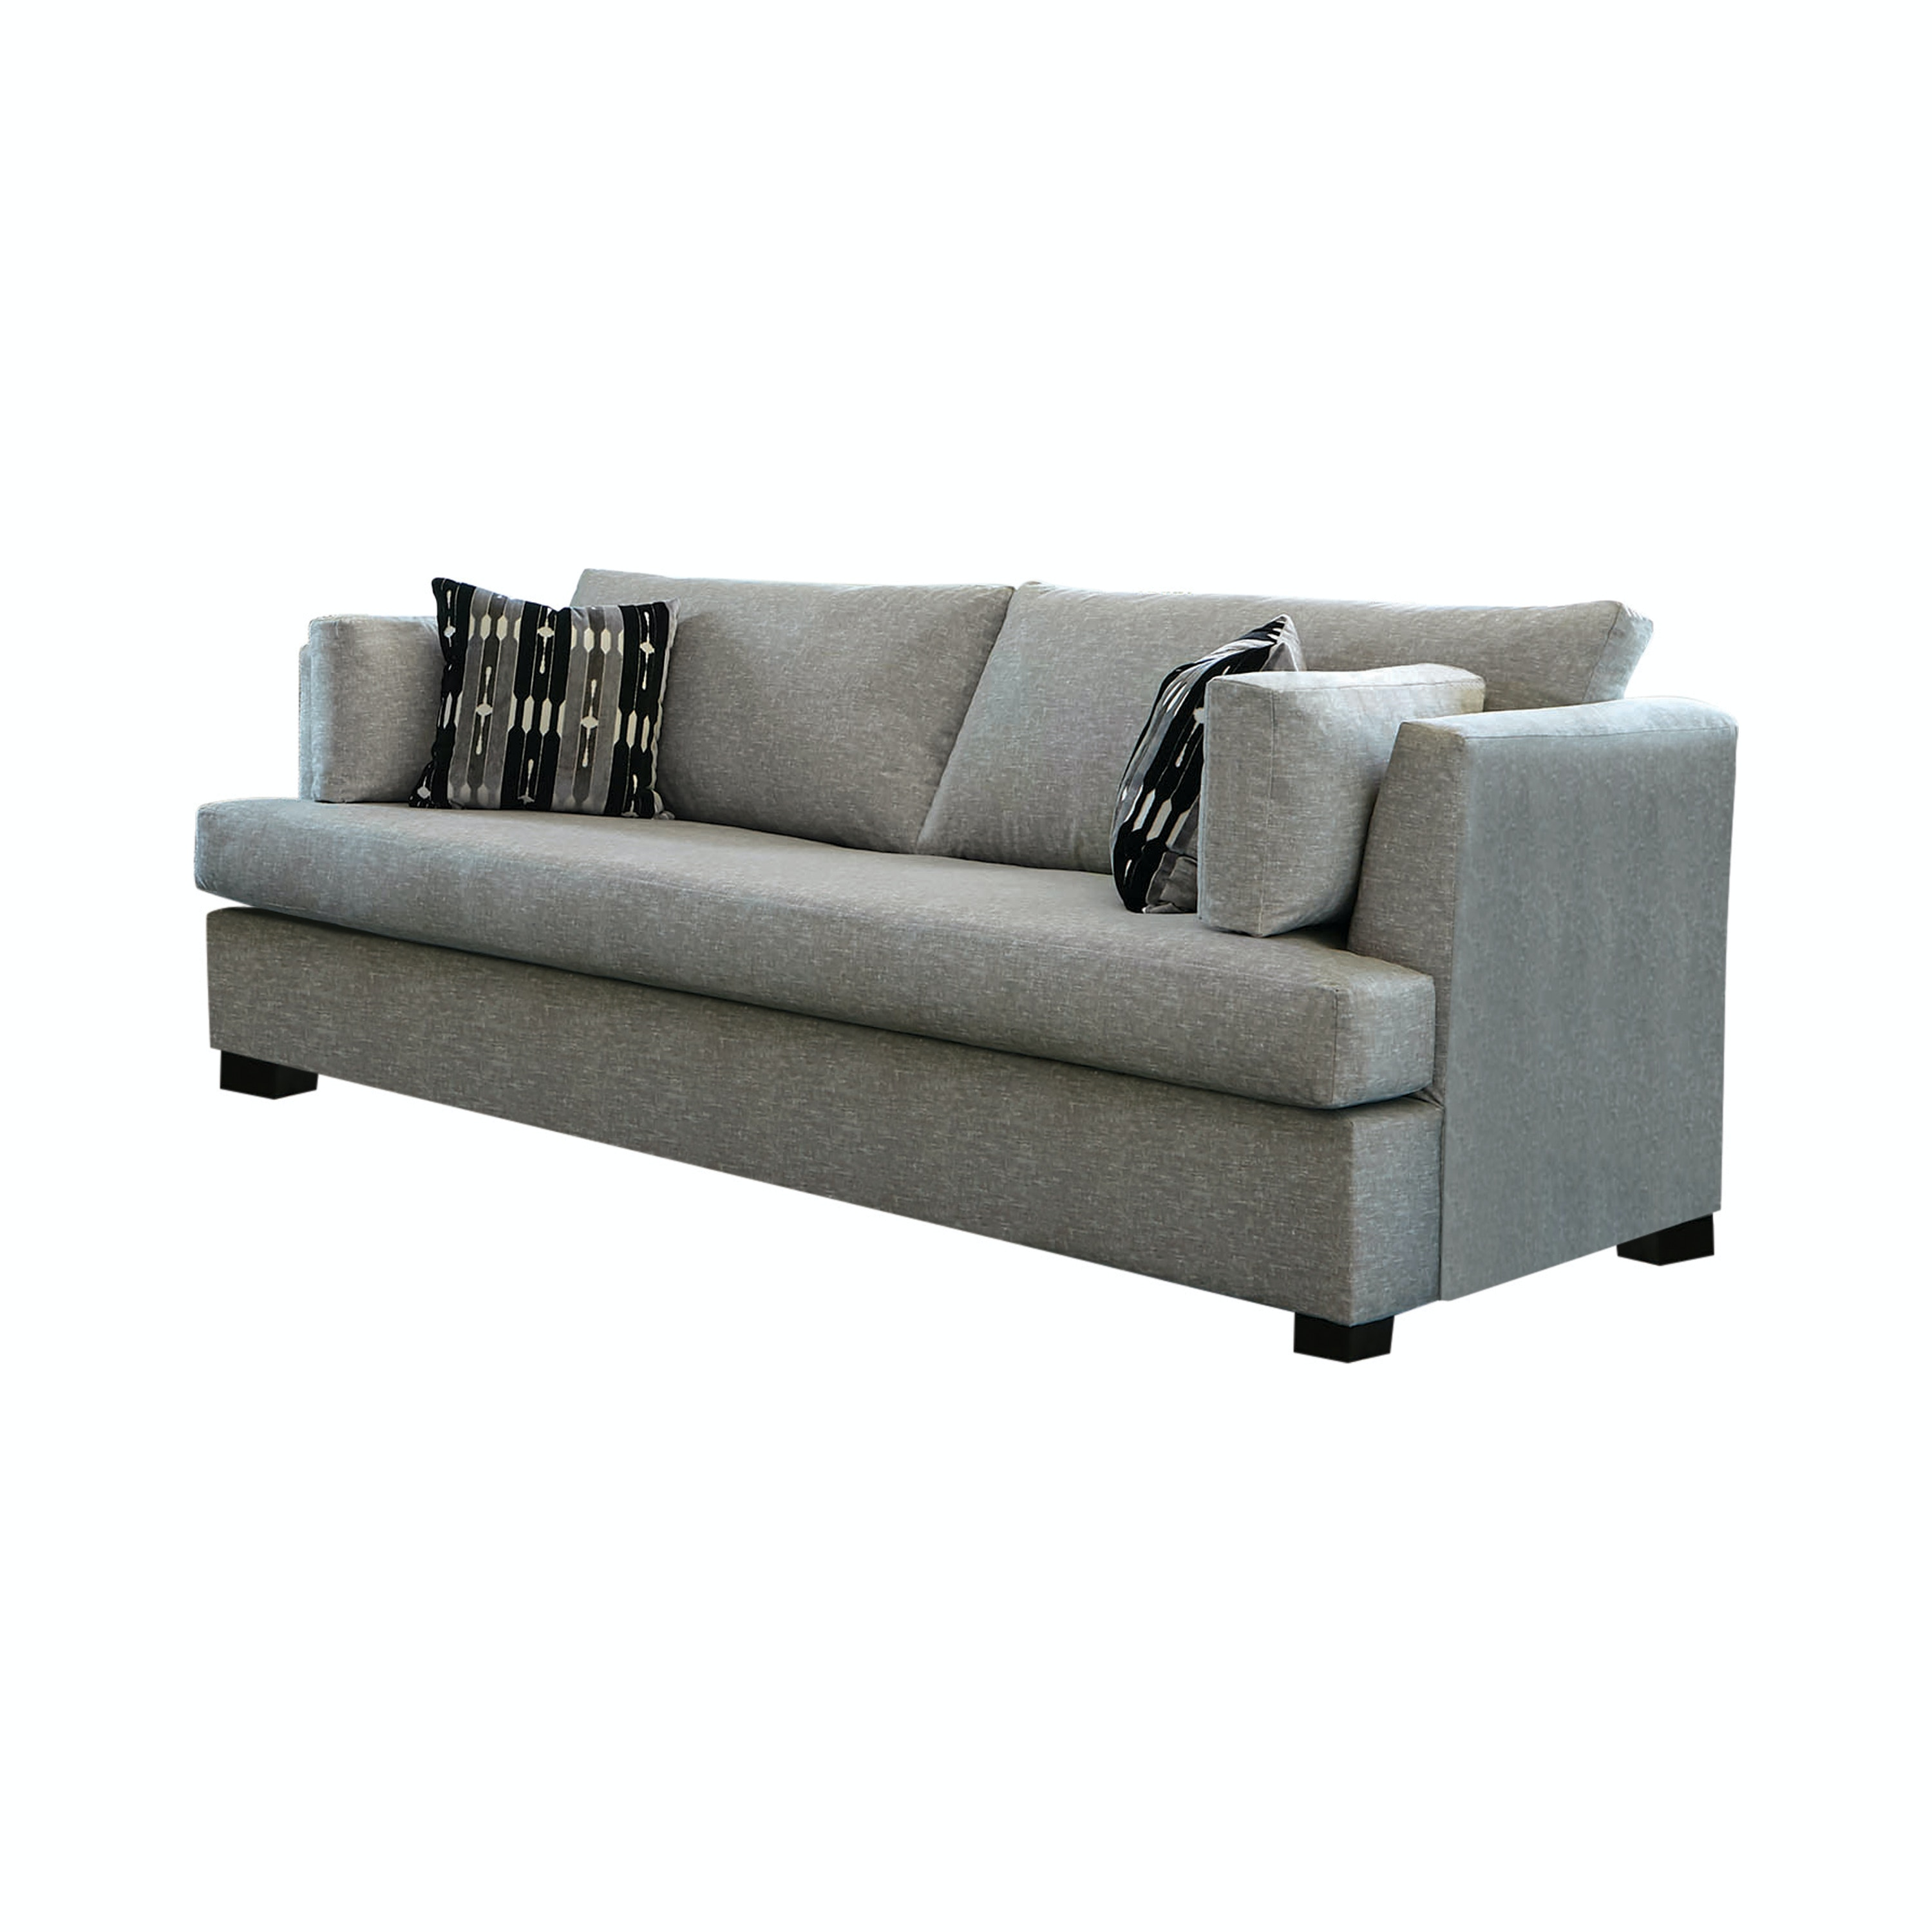 Genial Coaster Living Room Sofa 508601 At China Towne Furniture